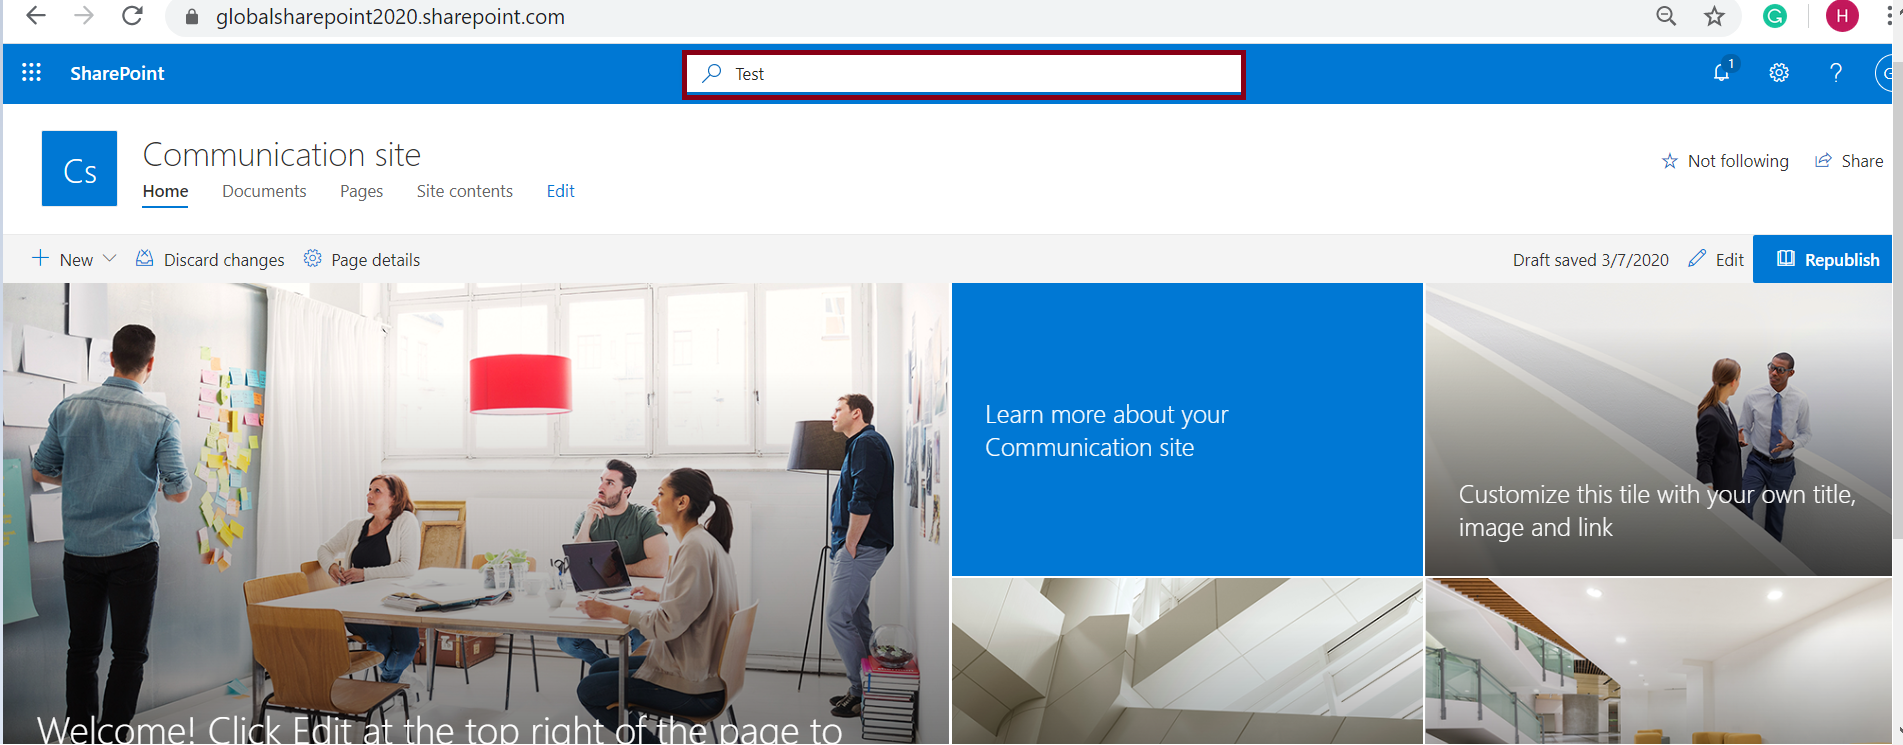 Office 365 suite search box test in modern SharePoint Online